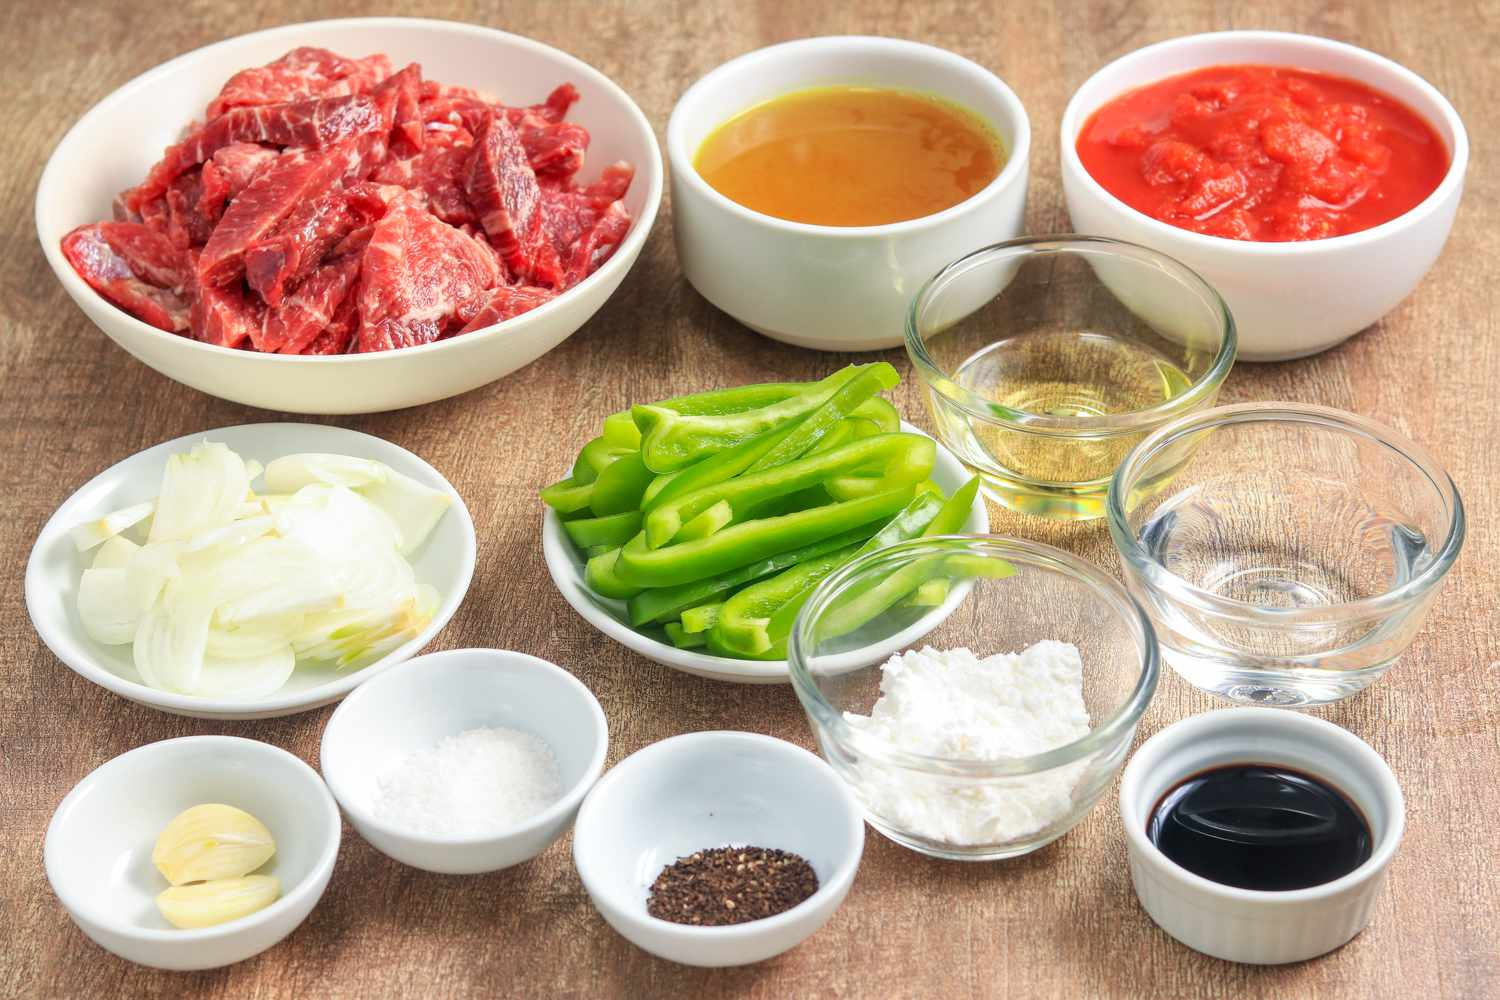 Pepper steak with sirloin tips ingredients